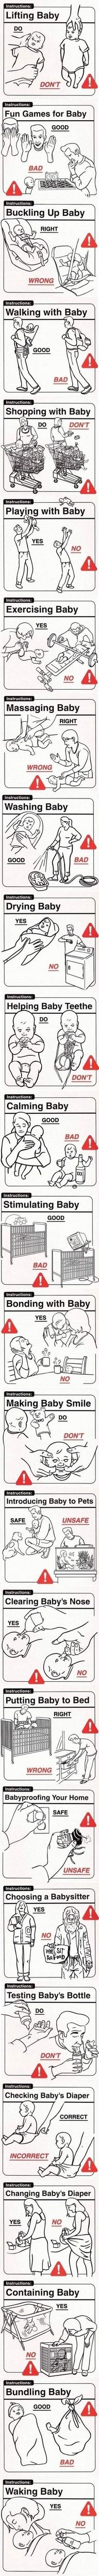 Baby dos and don'ts